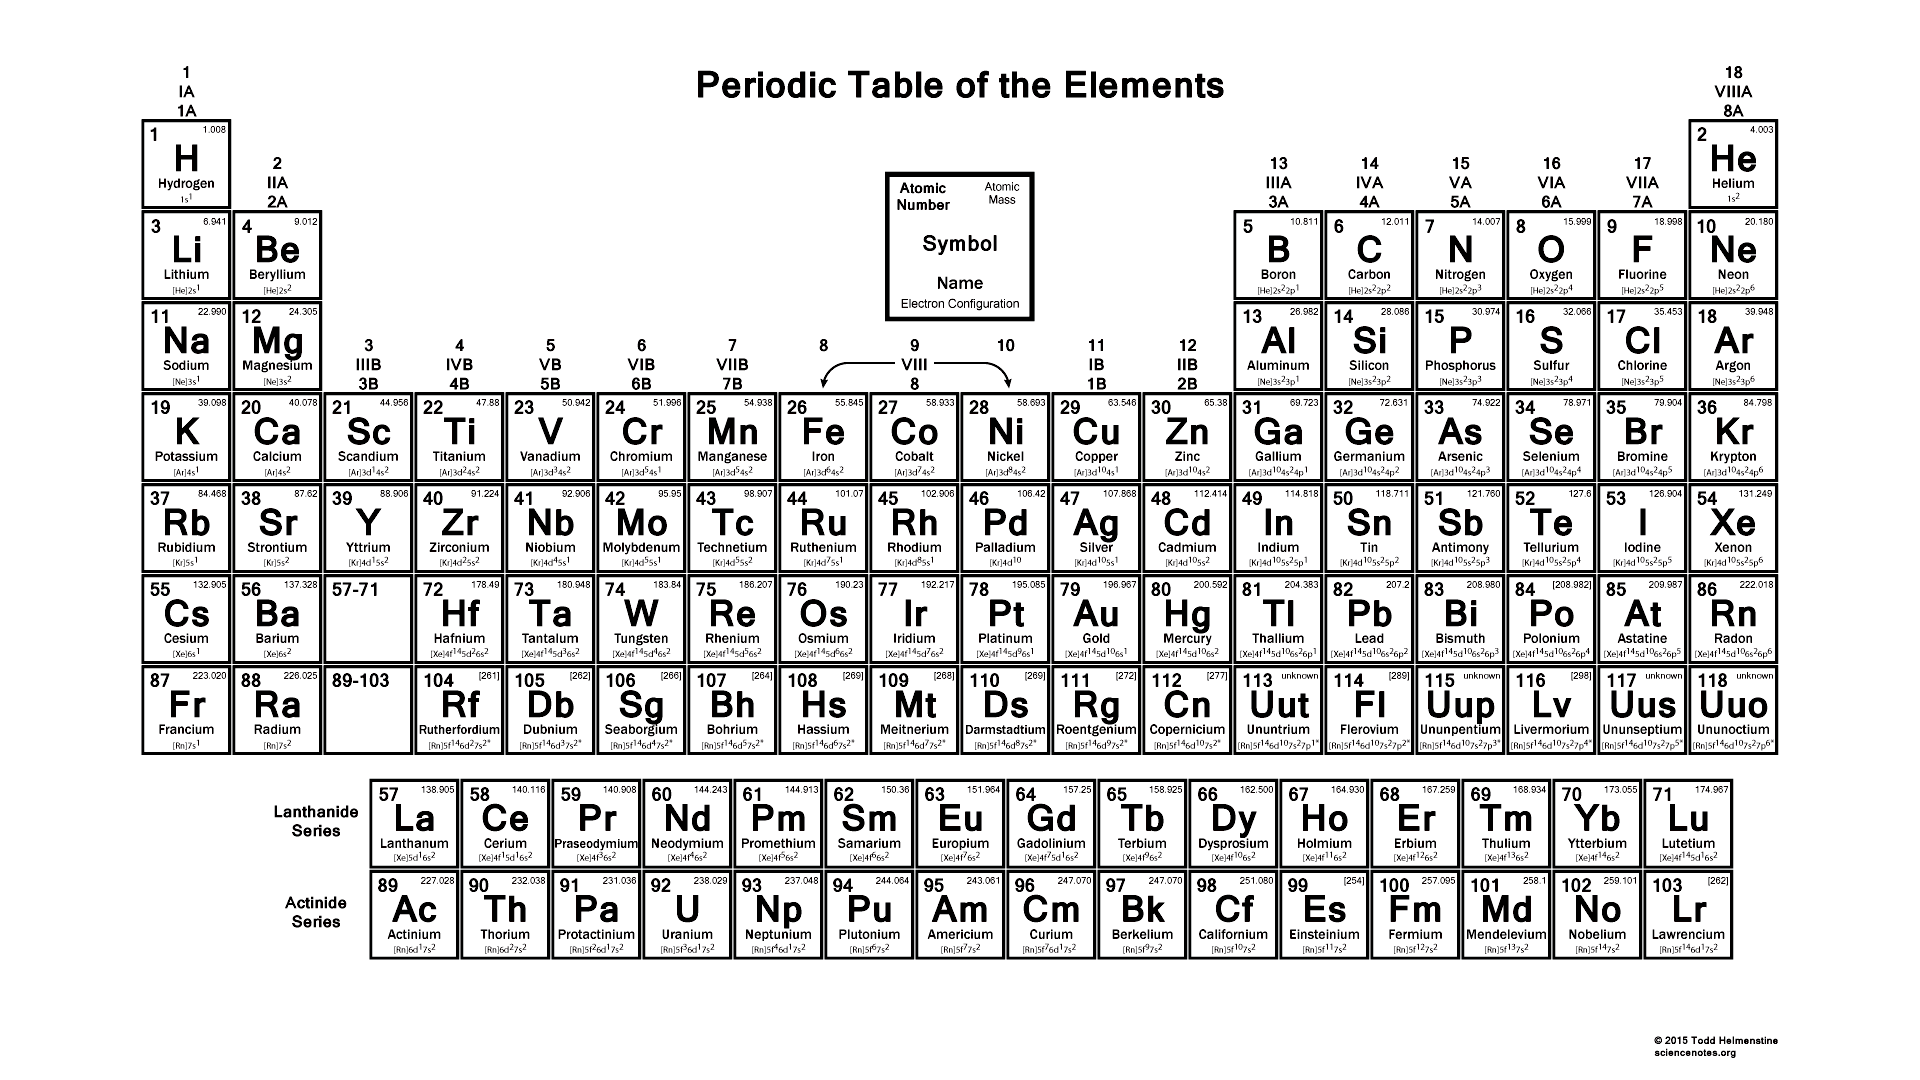 Worksheets Periodic Table Worksheet Pdf periodic table with electron configurations pdf 2015 black and white configuration 2015